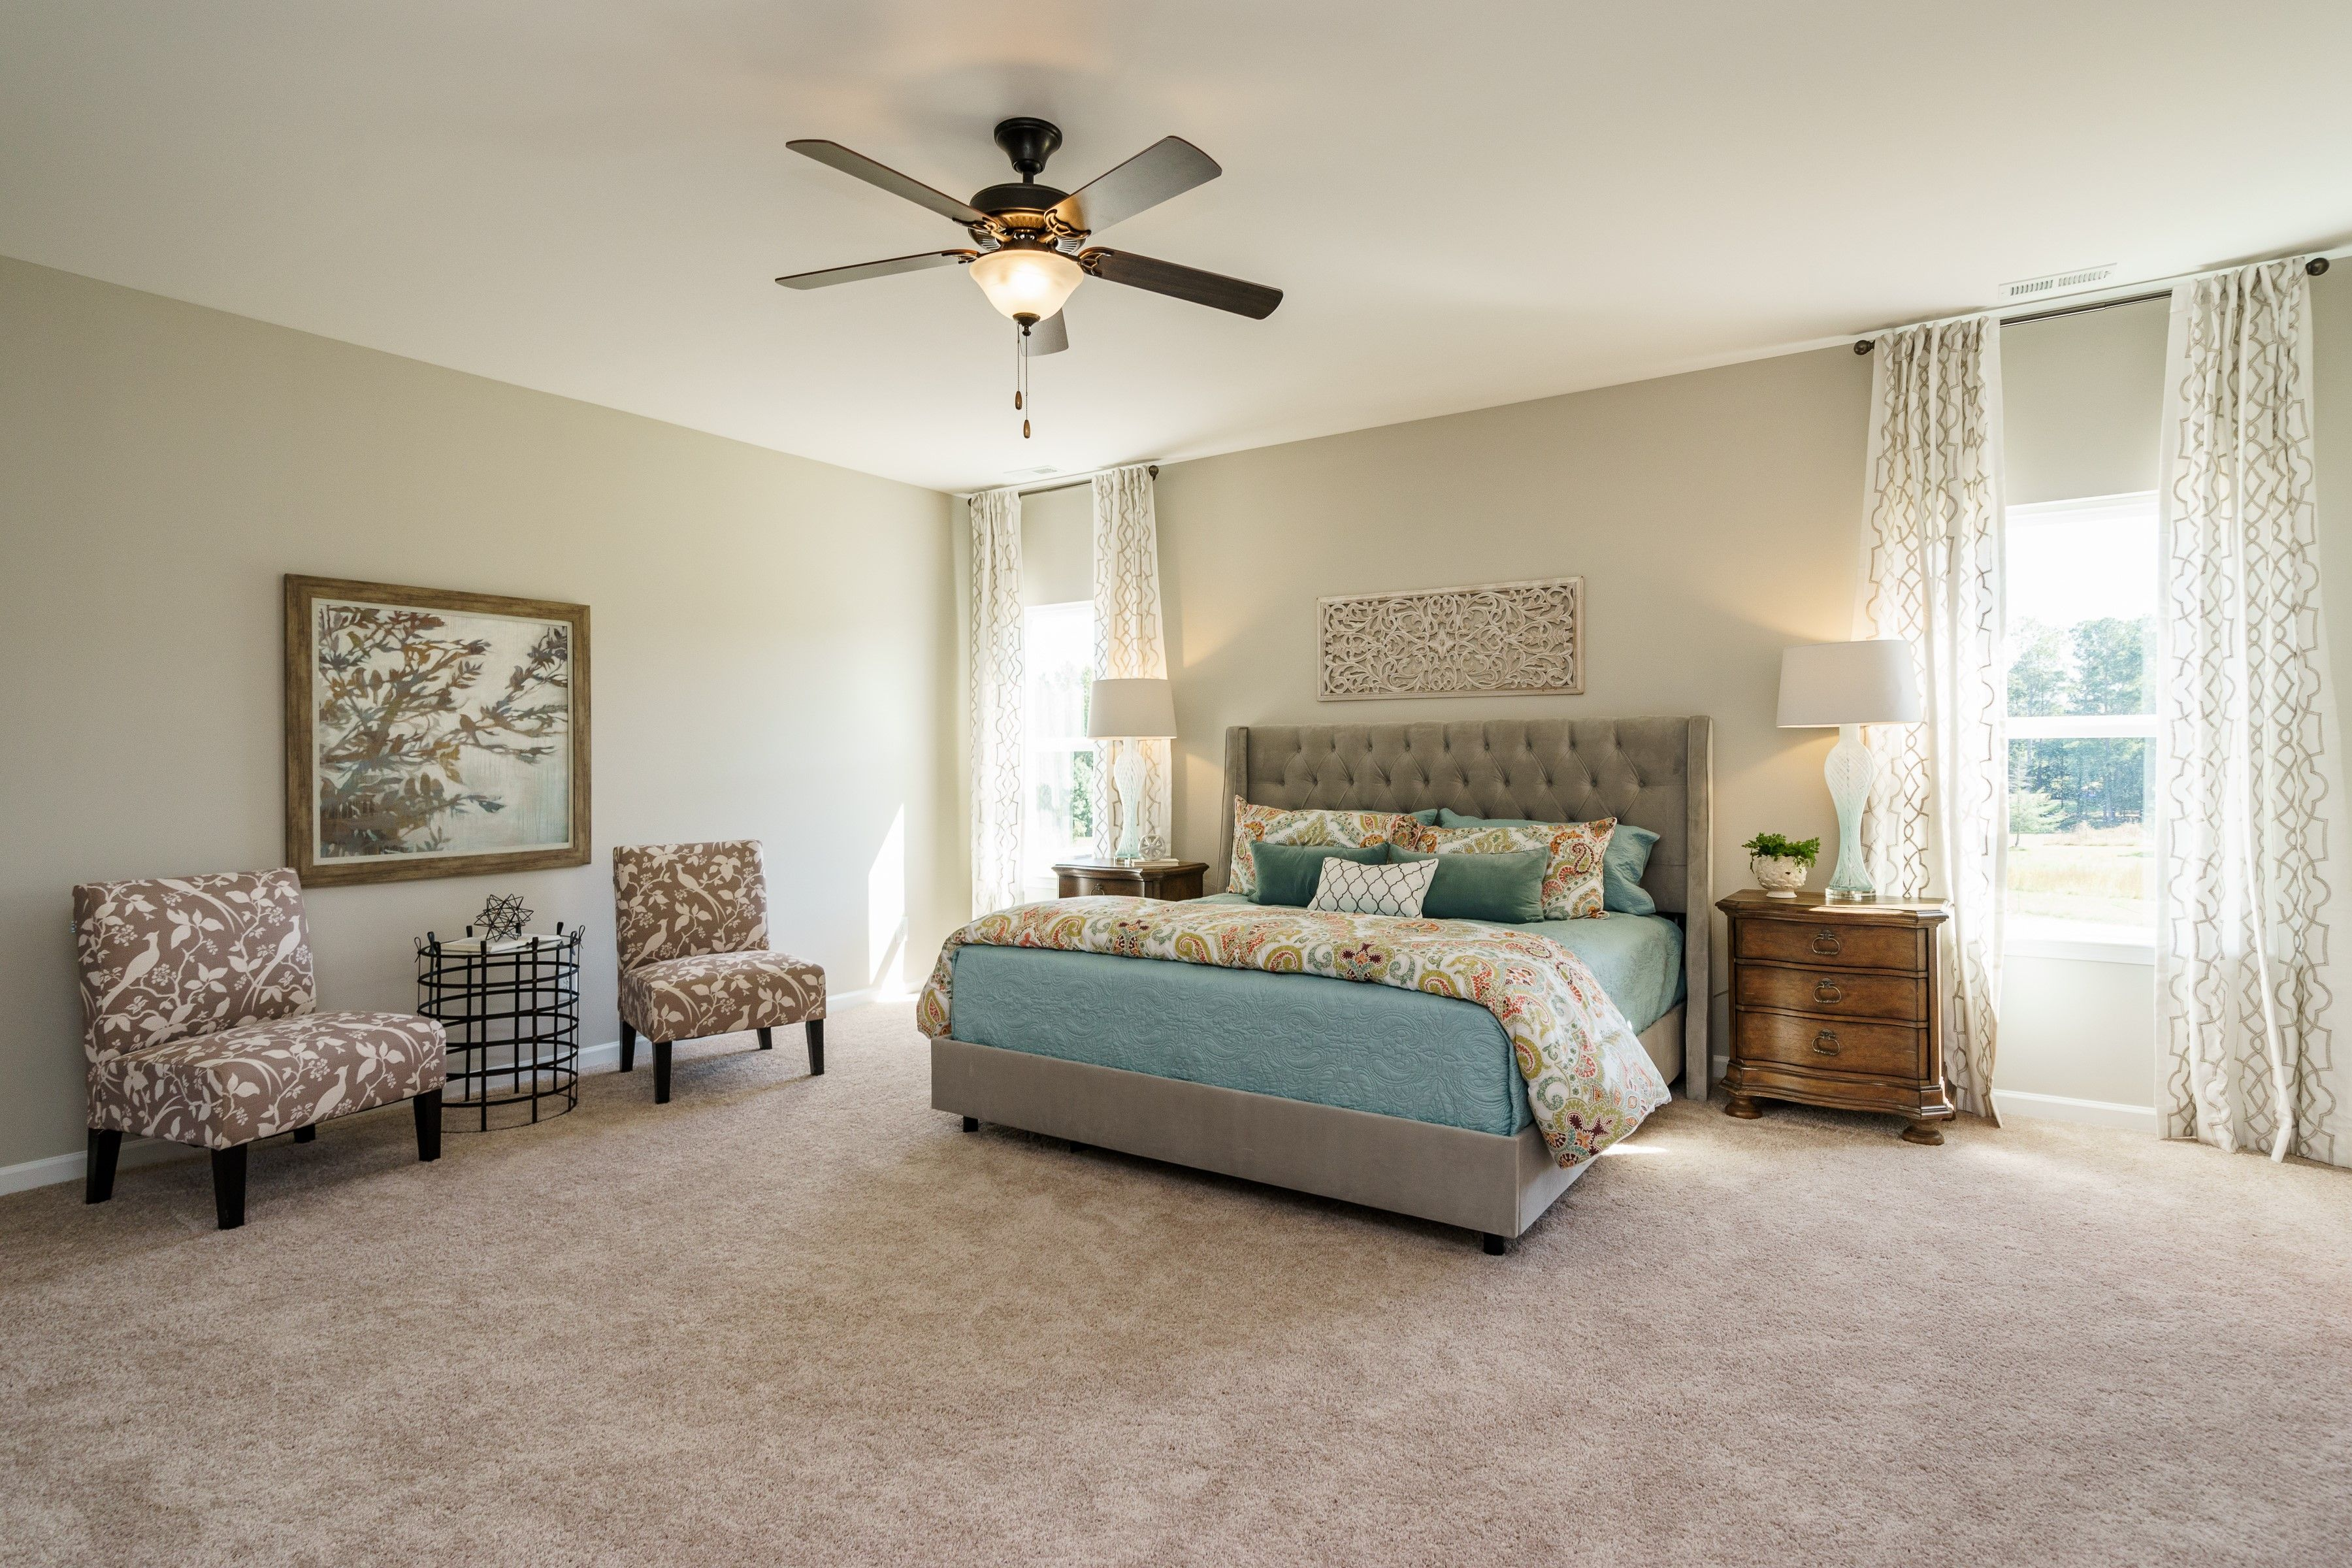 Bedroom featured in The McIntosh By Smith Douglas Homes in Birmingham, AL